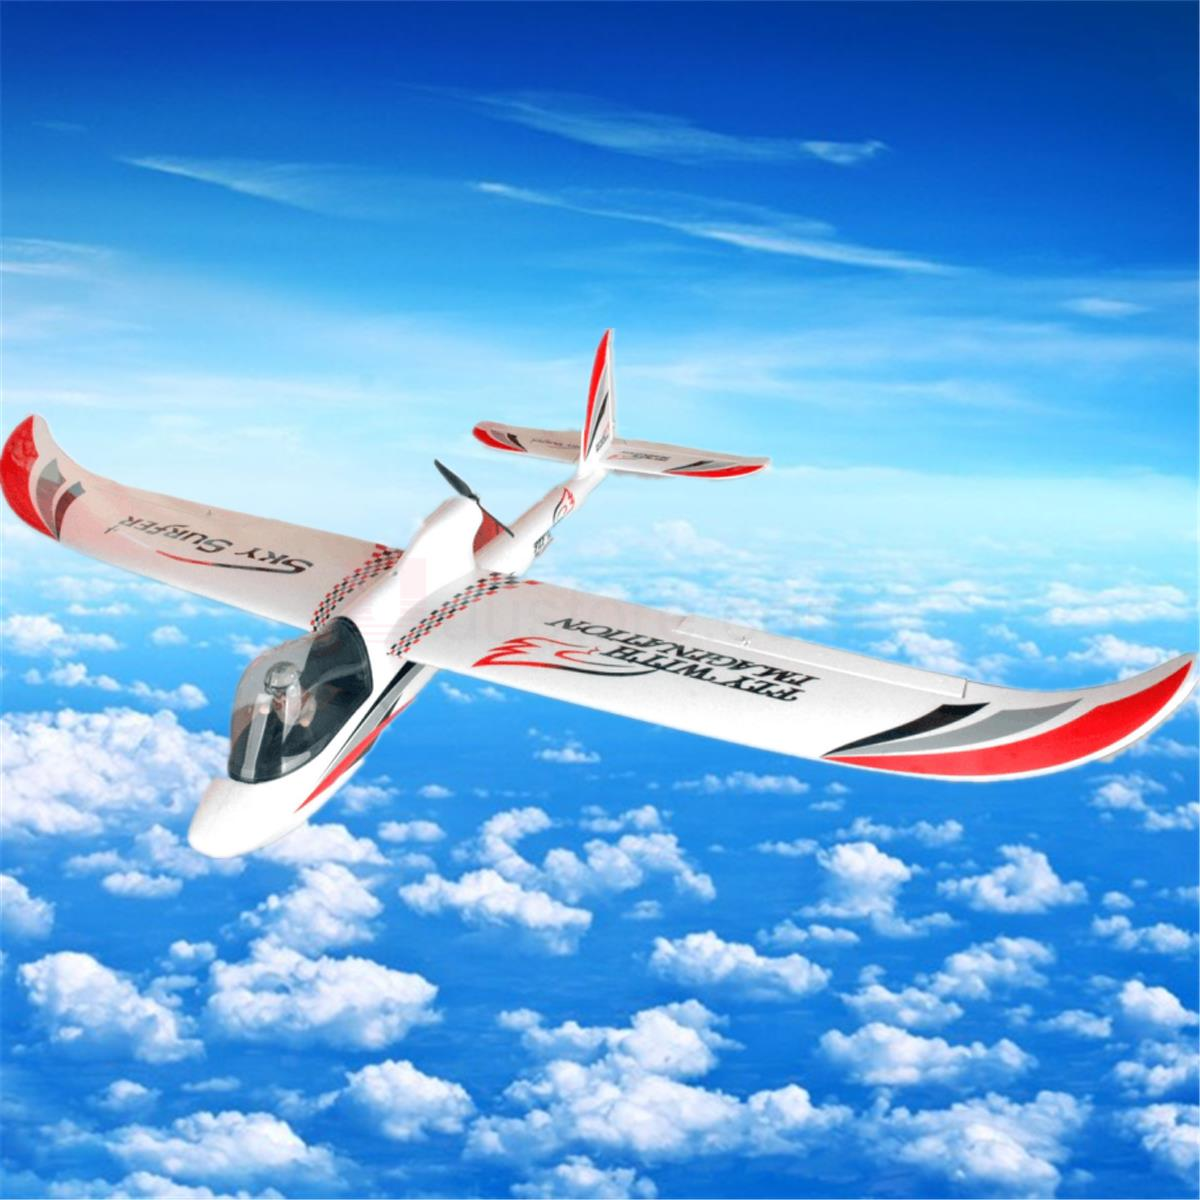 Skysurfer 1500mm wingspan glider plane EPO Kit PNP ARF RC airplane for FPV image